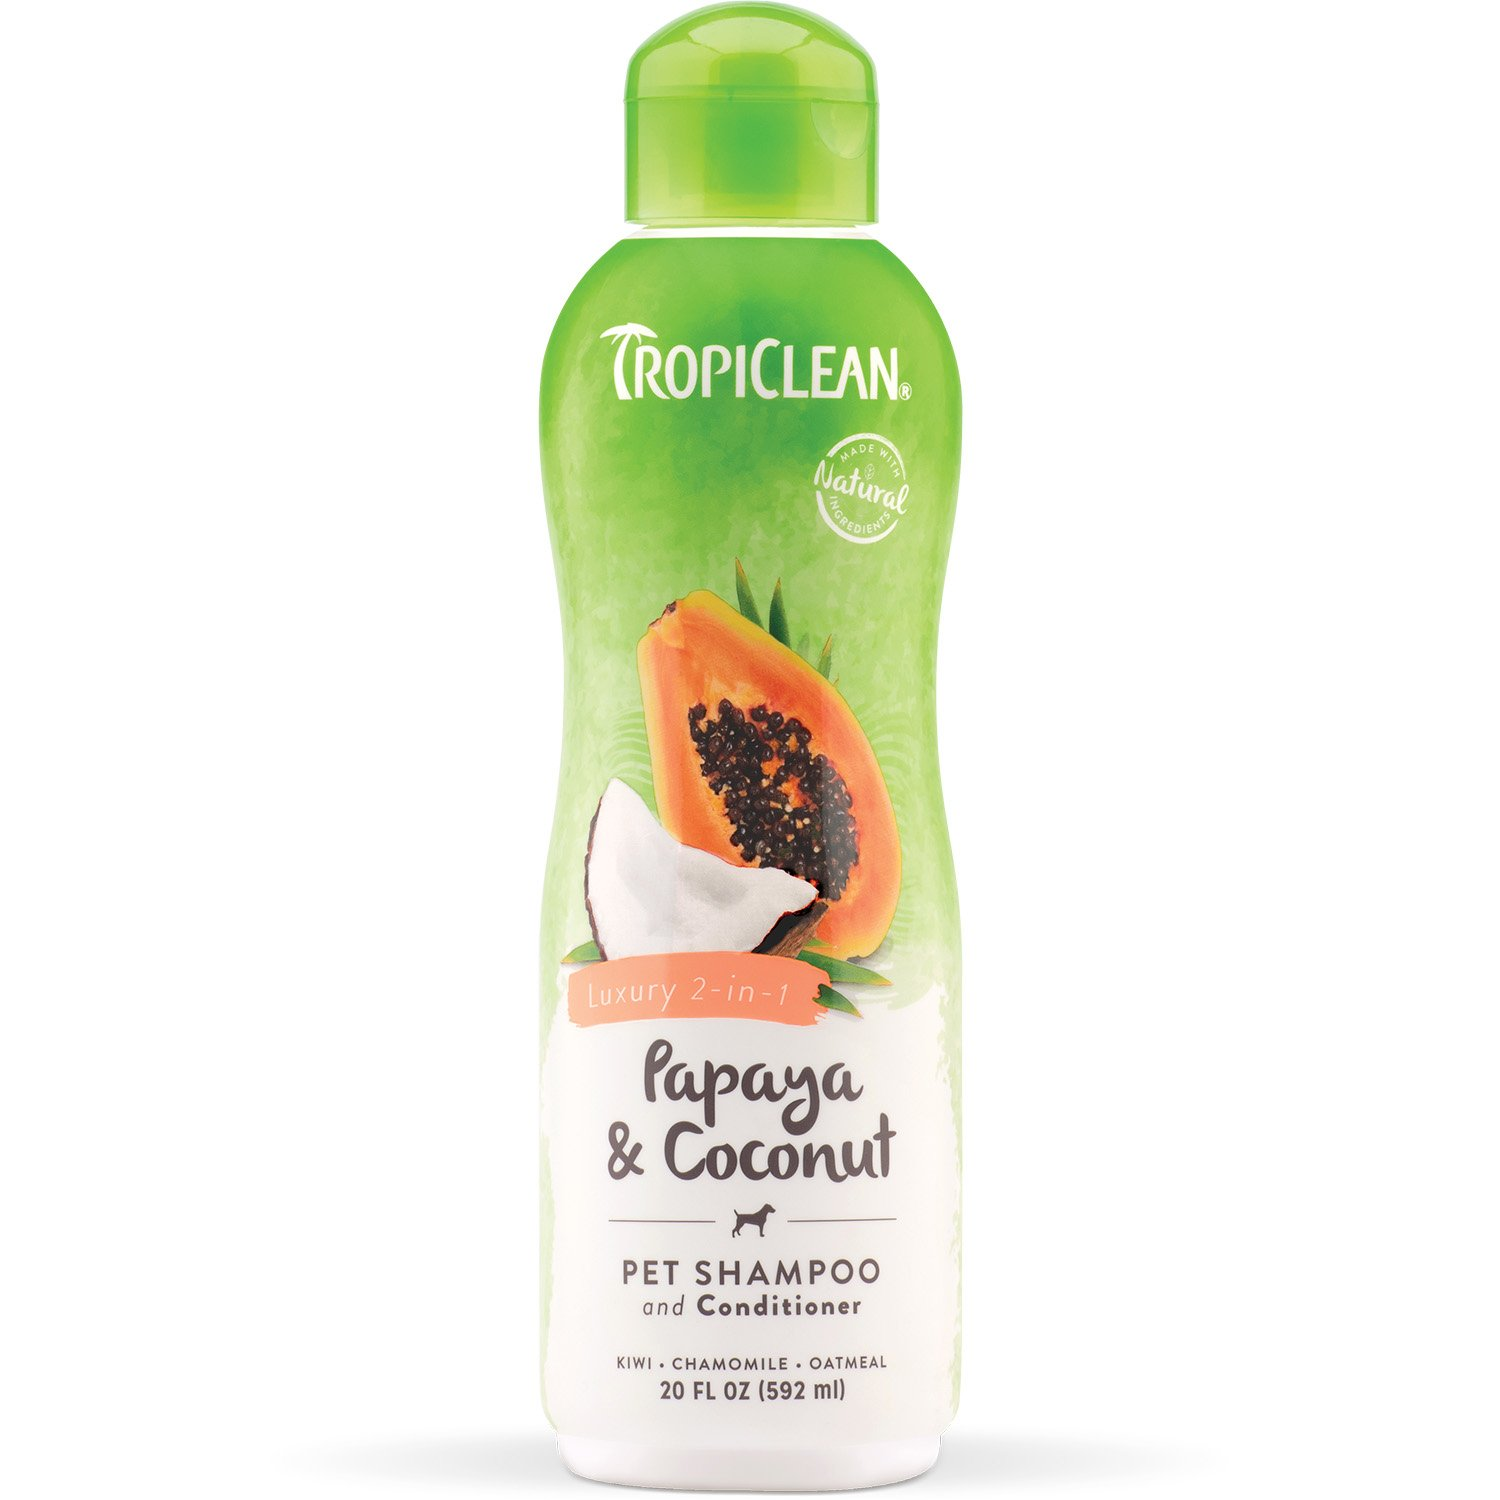 TropiClean Papaya and Coconut Pet Shampoo